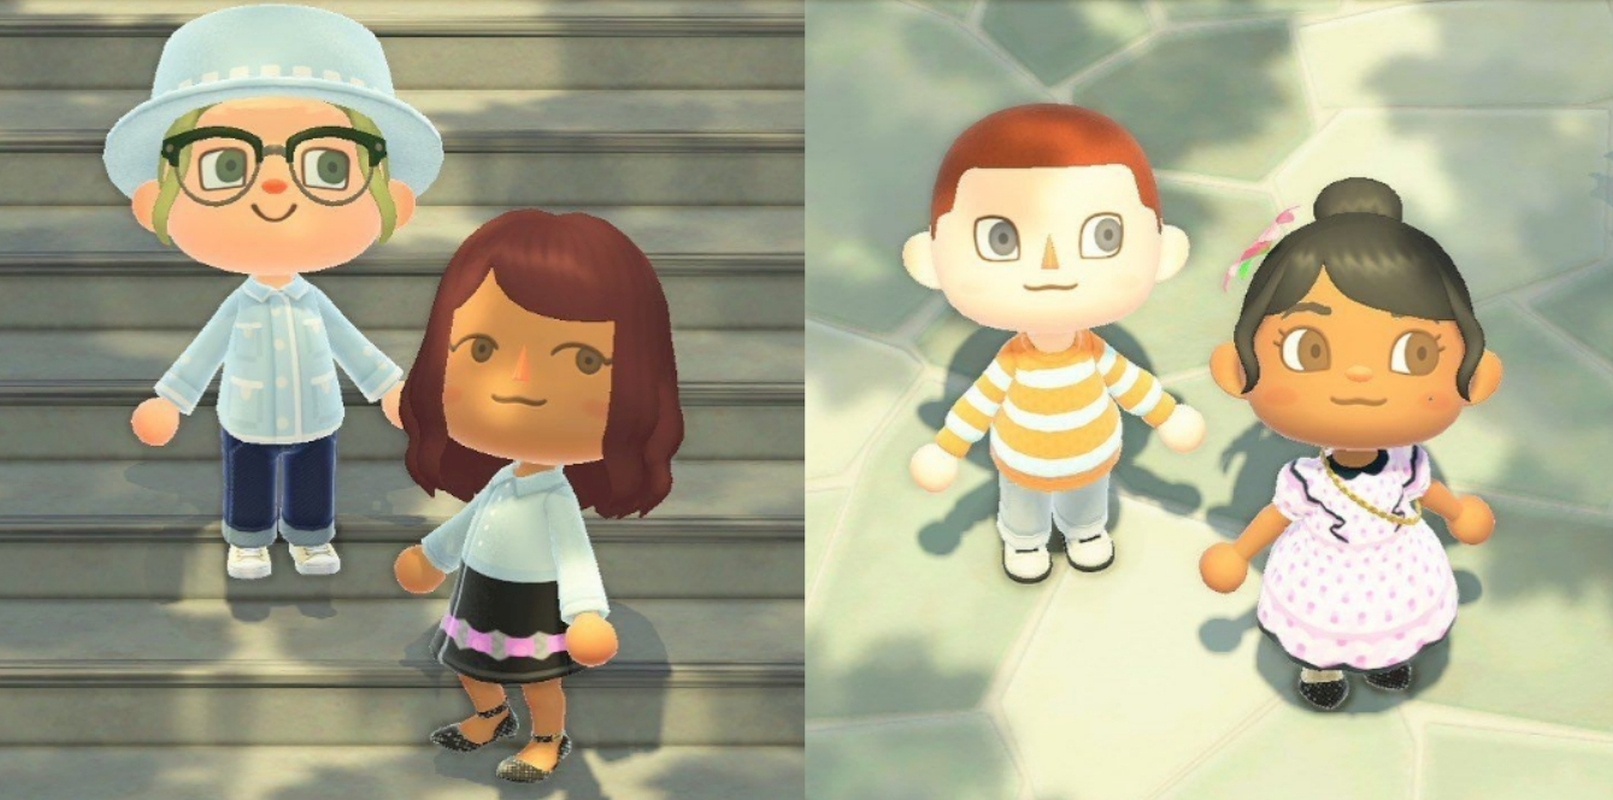 American Fashion Brand Marc Jacobs Releases Custom Designs For Animal Crossing: New Horizons